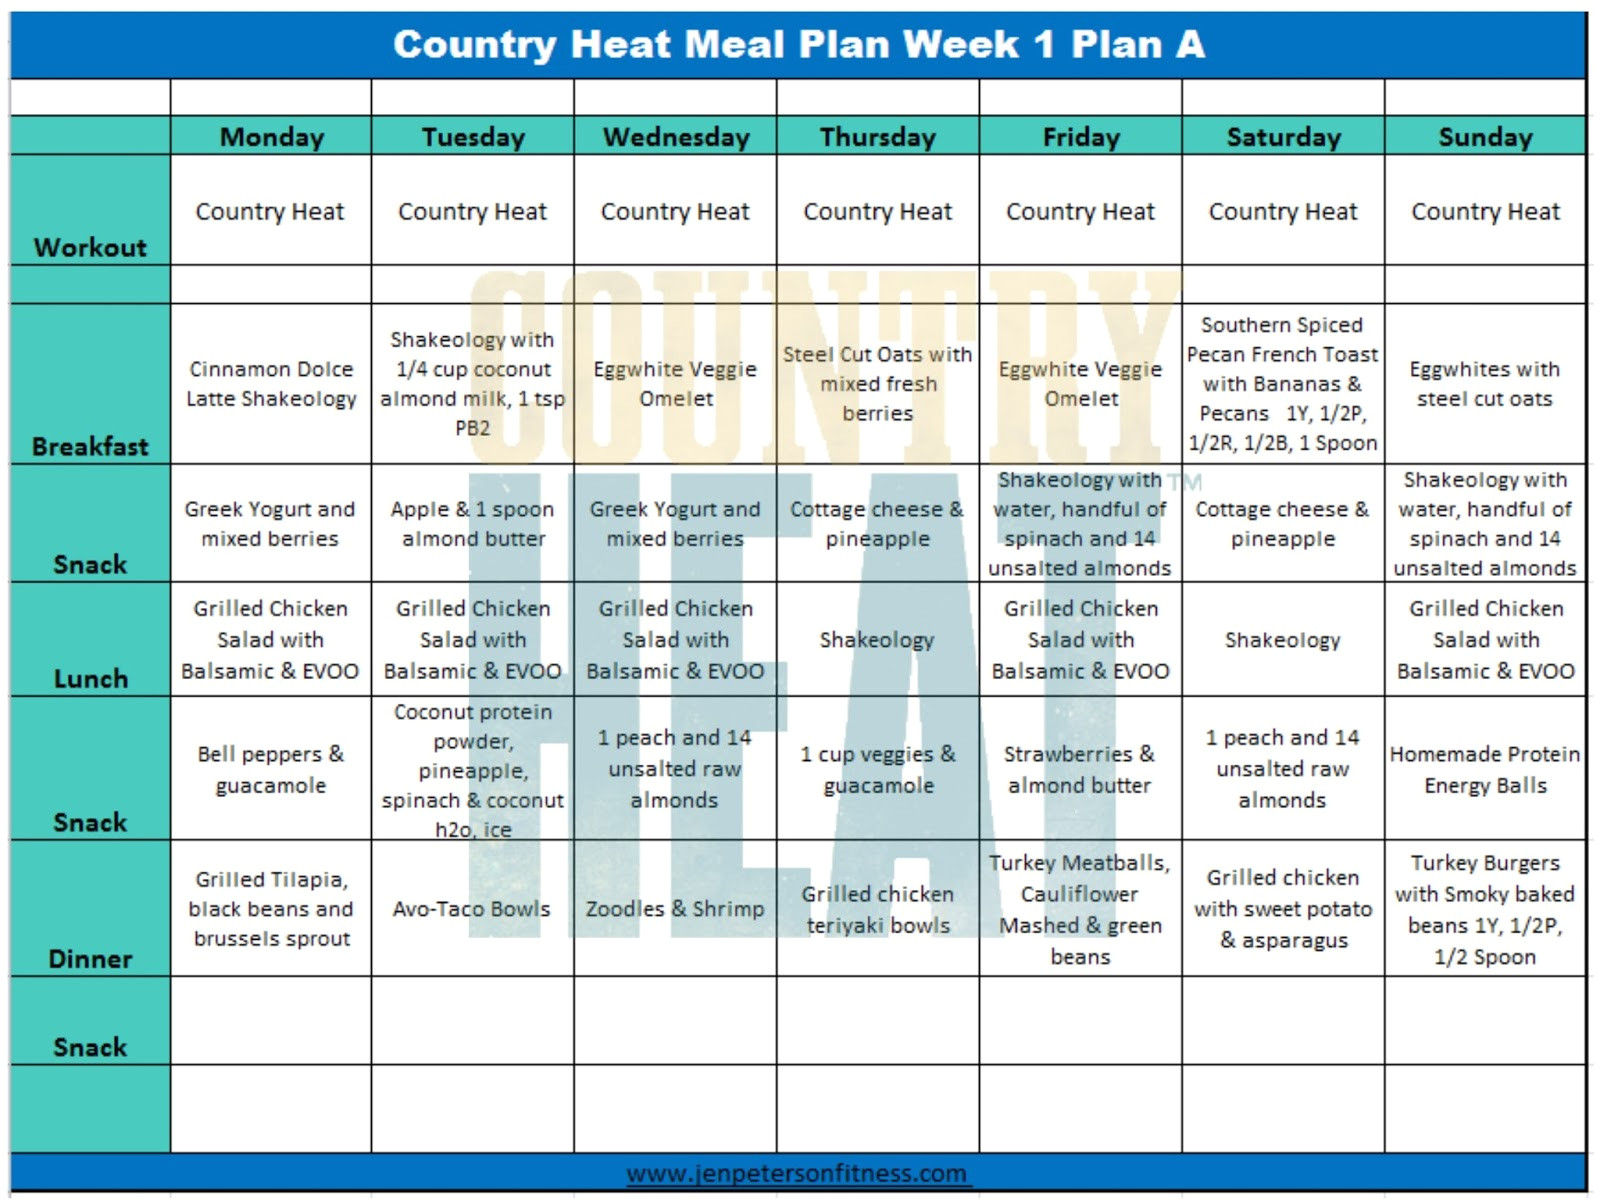 Eat at Home Meal Plan Reviews Clean Eating Mom Next Door Country Heat Week 1 Review and